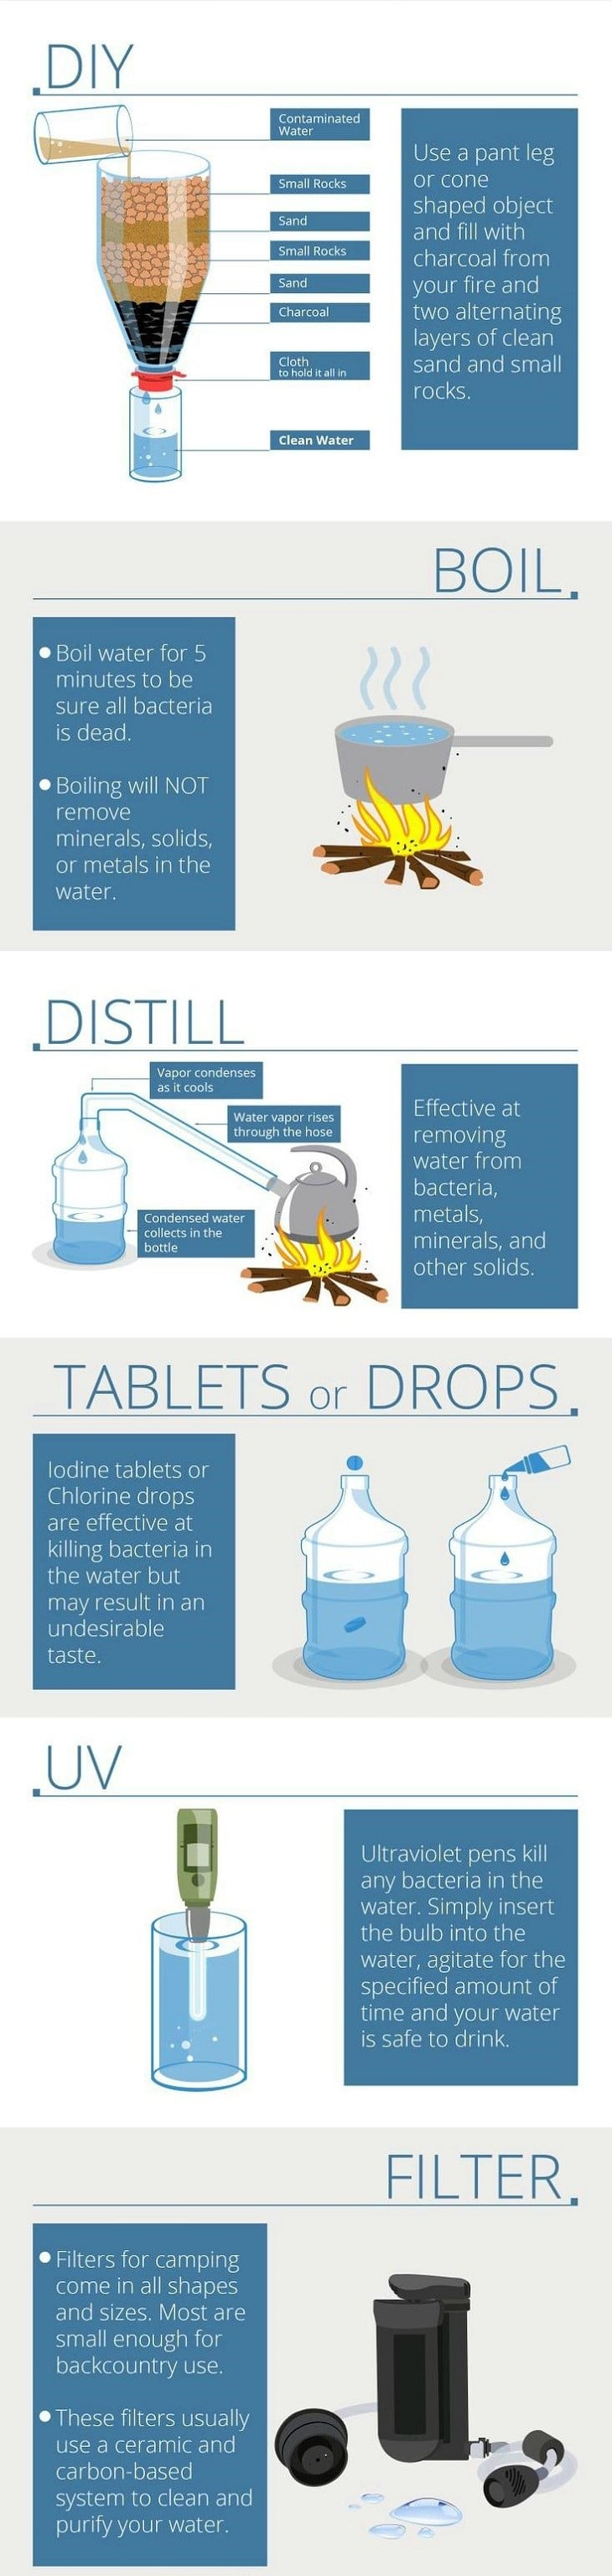 Disinfecting and finding water